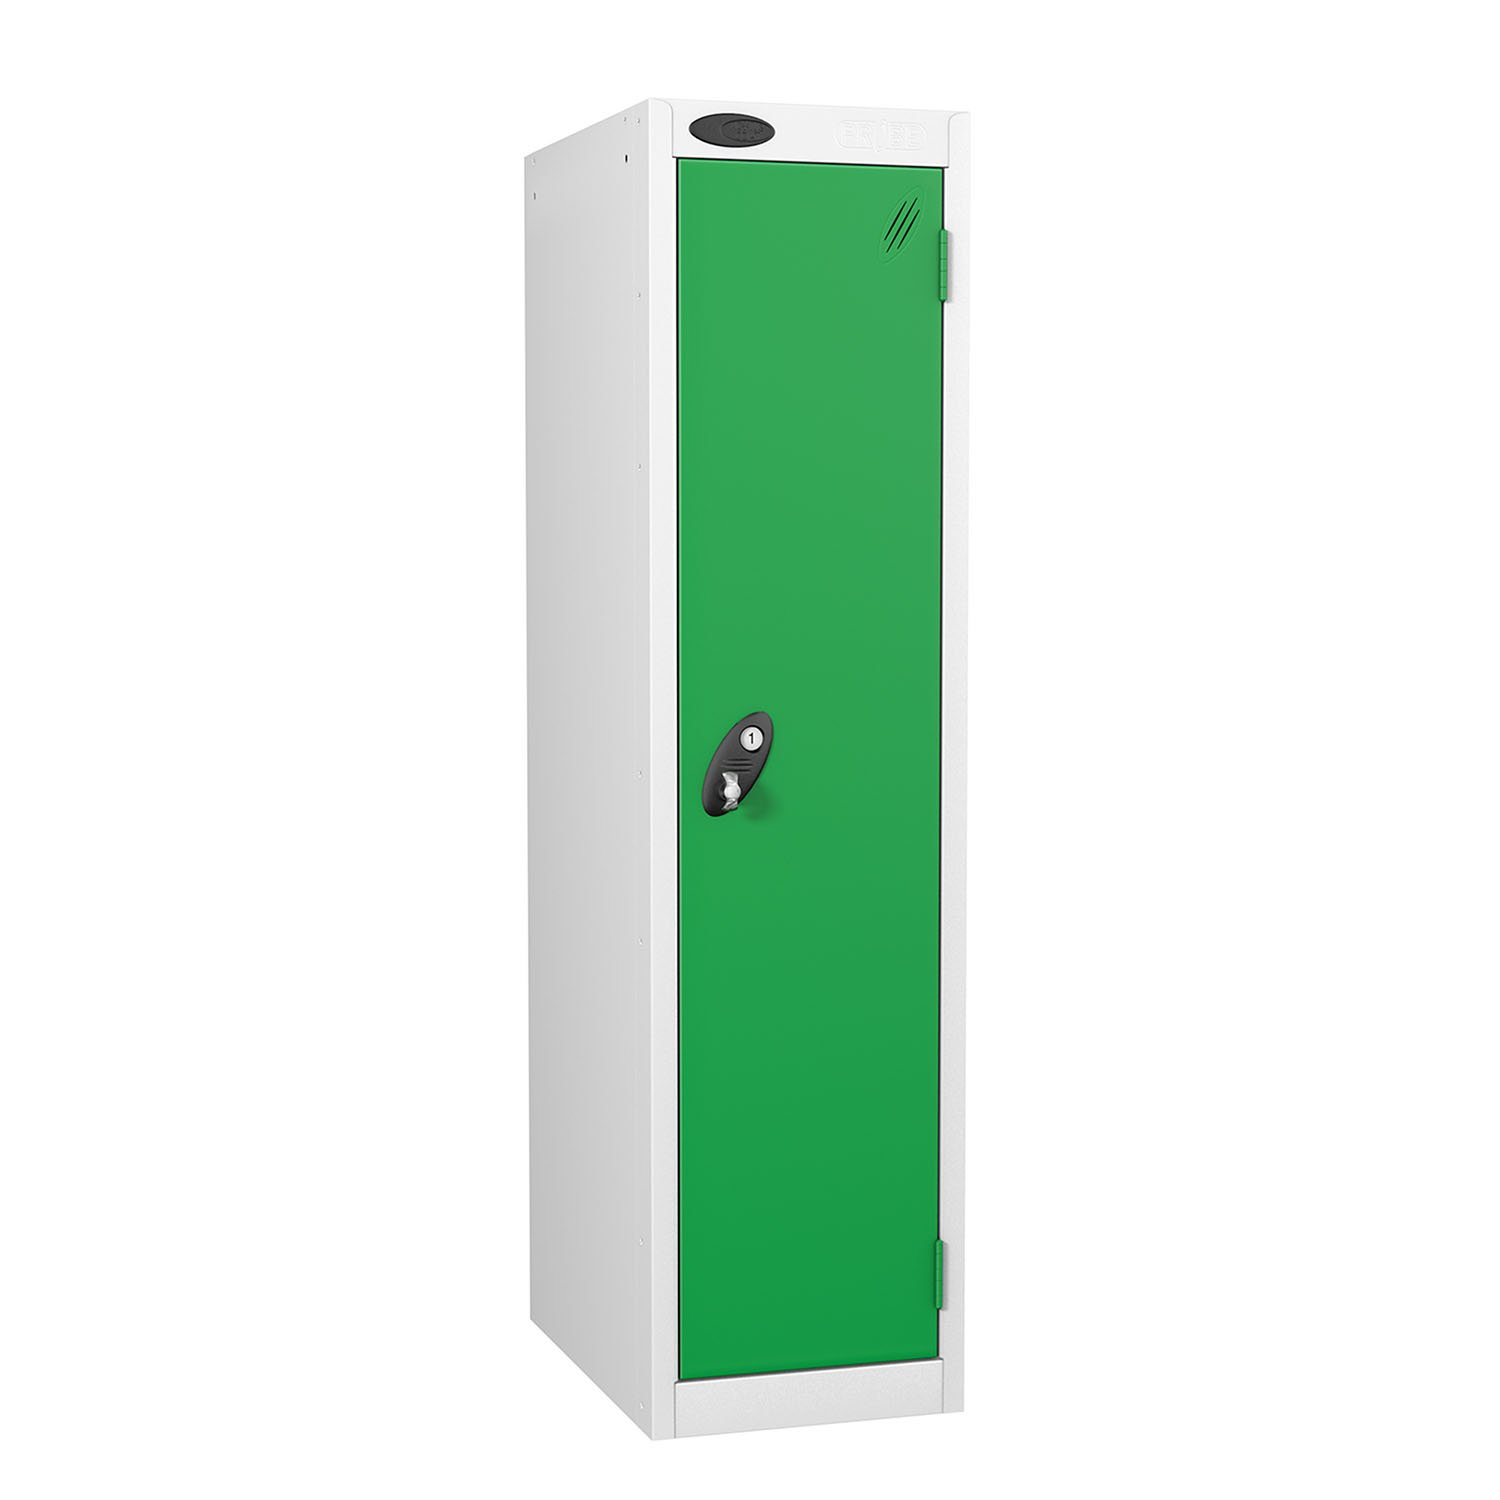 Probe 1 door low locker in green colour